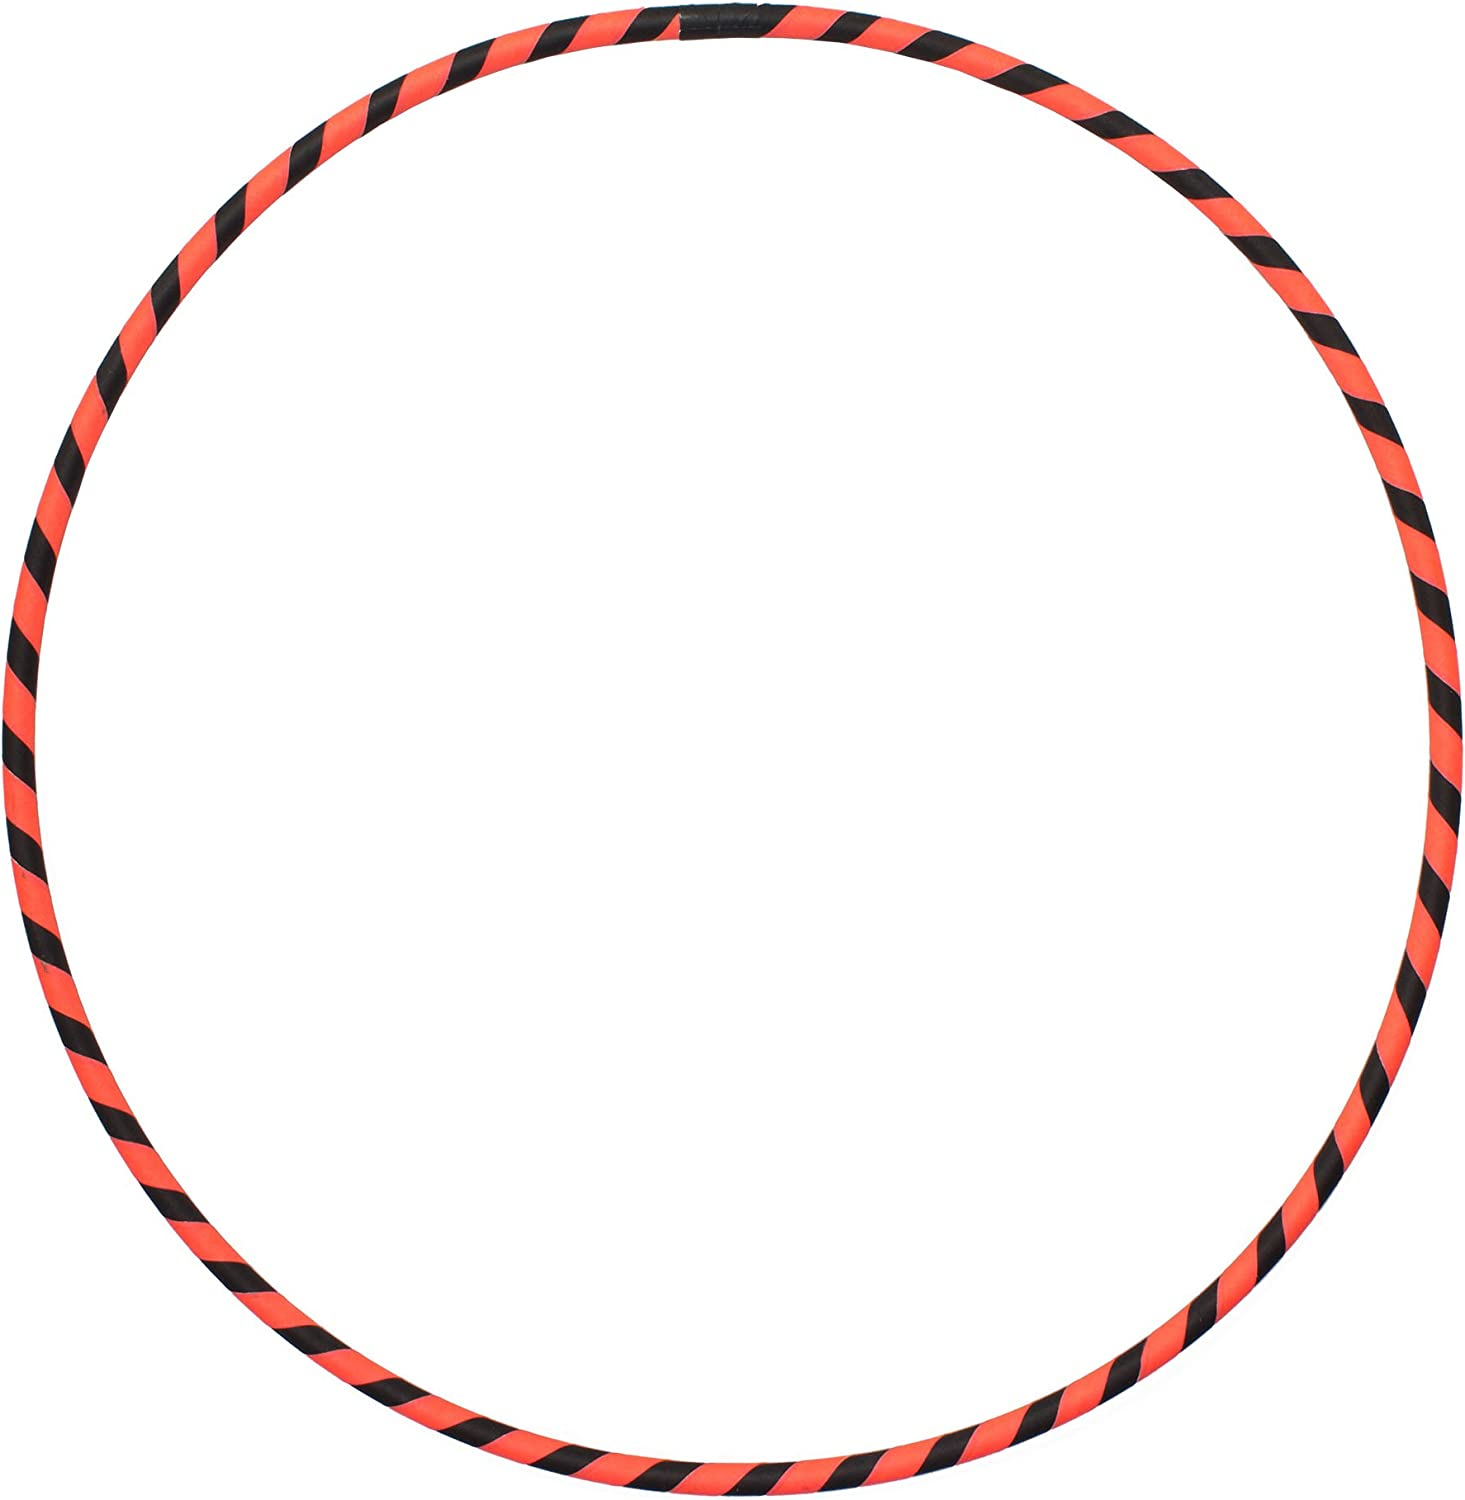 Echo Hoop Collapsible Travel Hula Hoop Several Color Choices